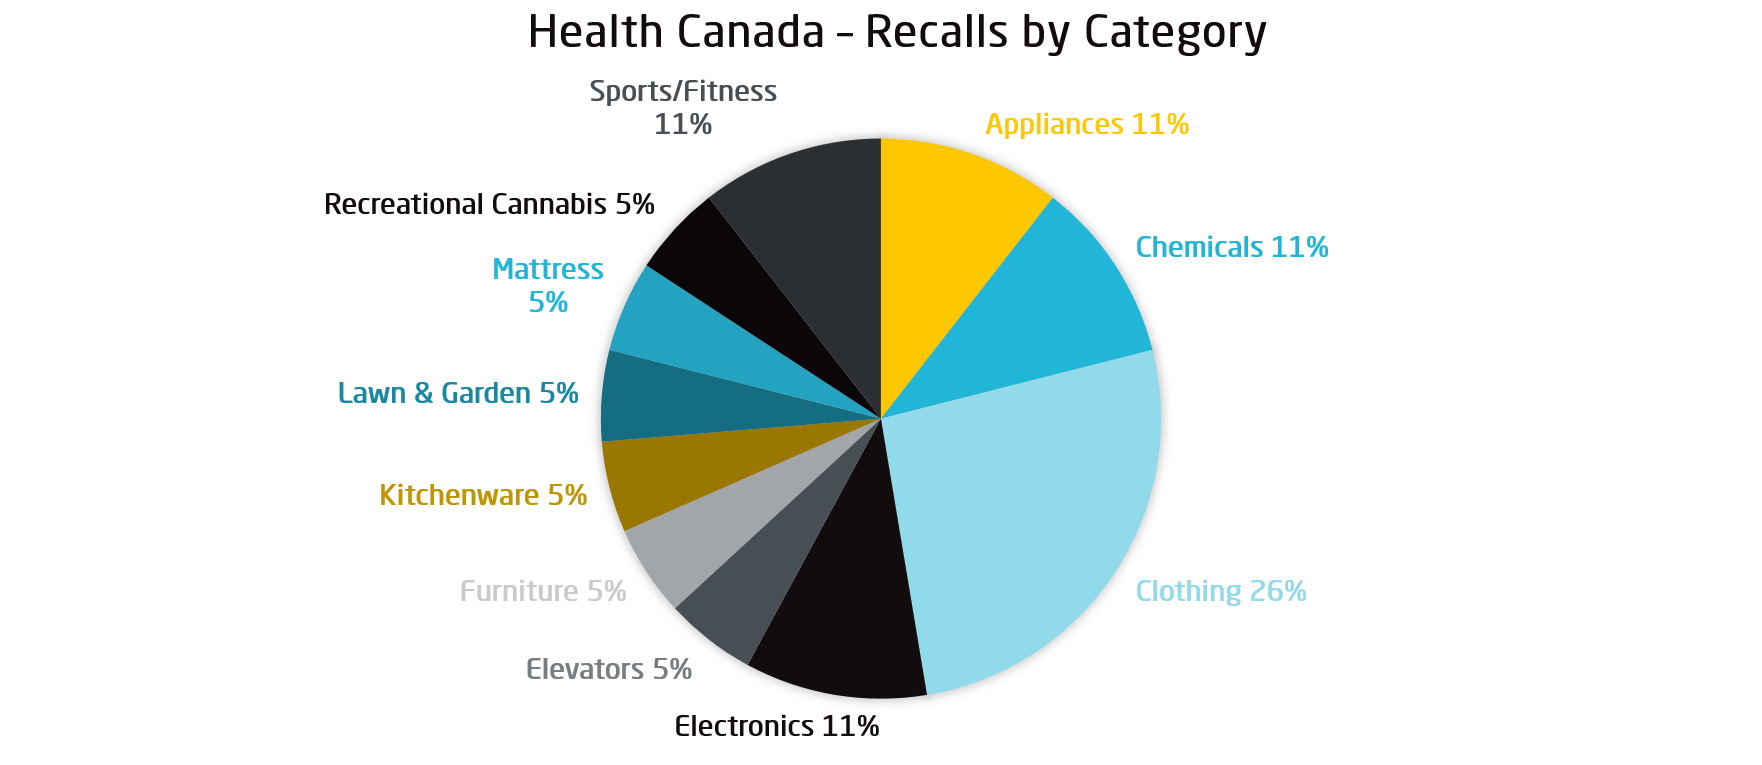 March 2019 Consumer Product Recalls Analysis